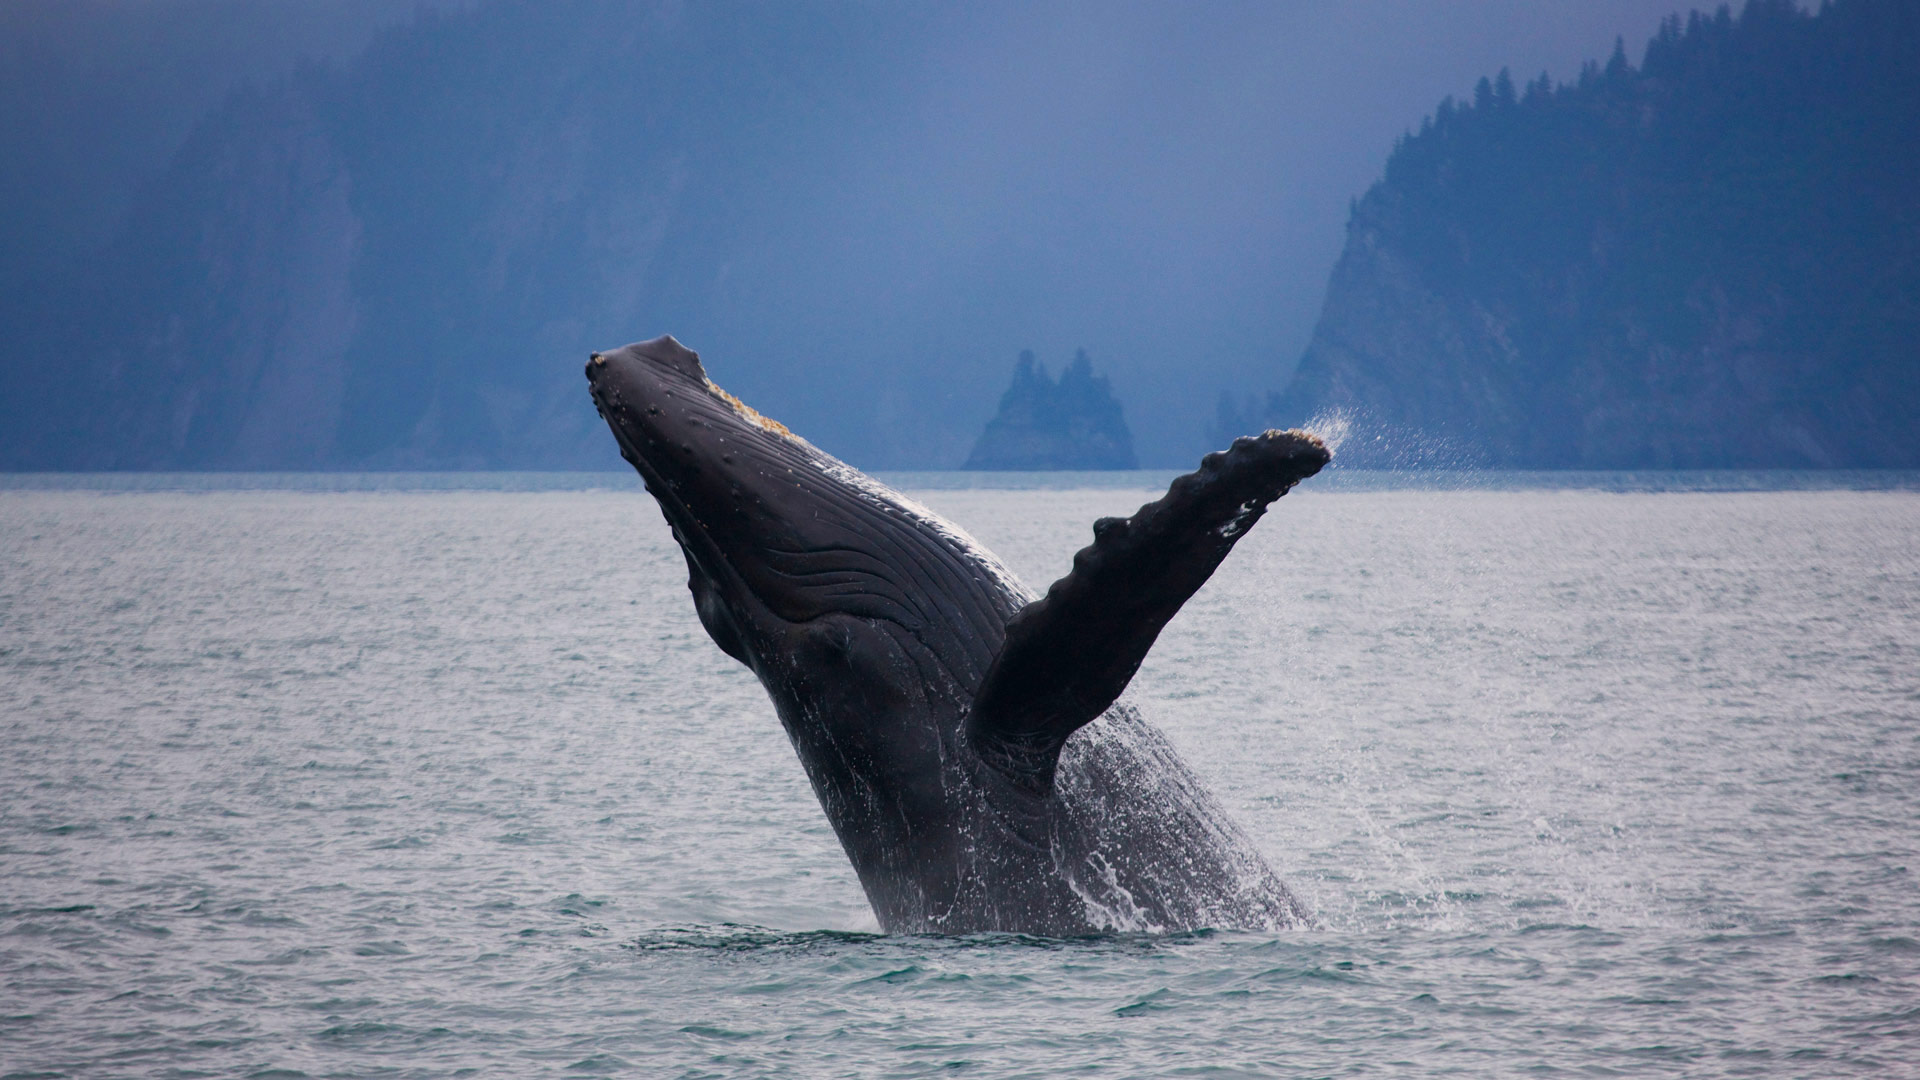 Humpback whale off the shore of Kenai Fjords National Park, Alaska (© Ron Niebrugge/Alamy)